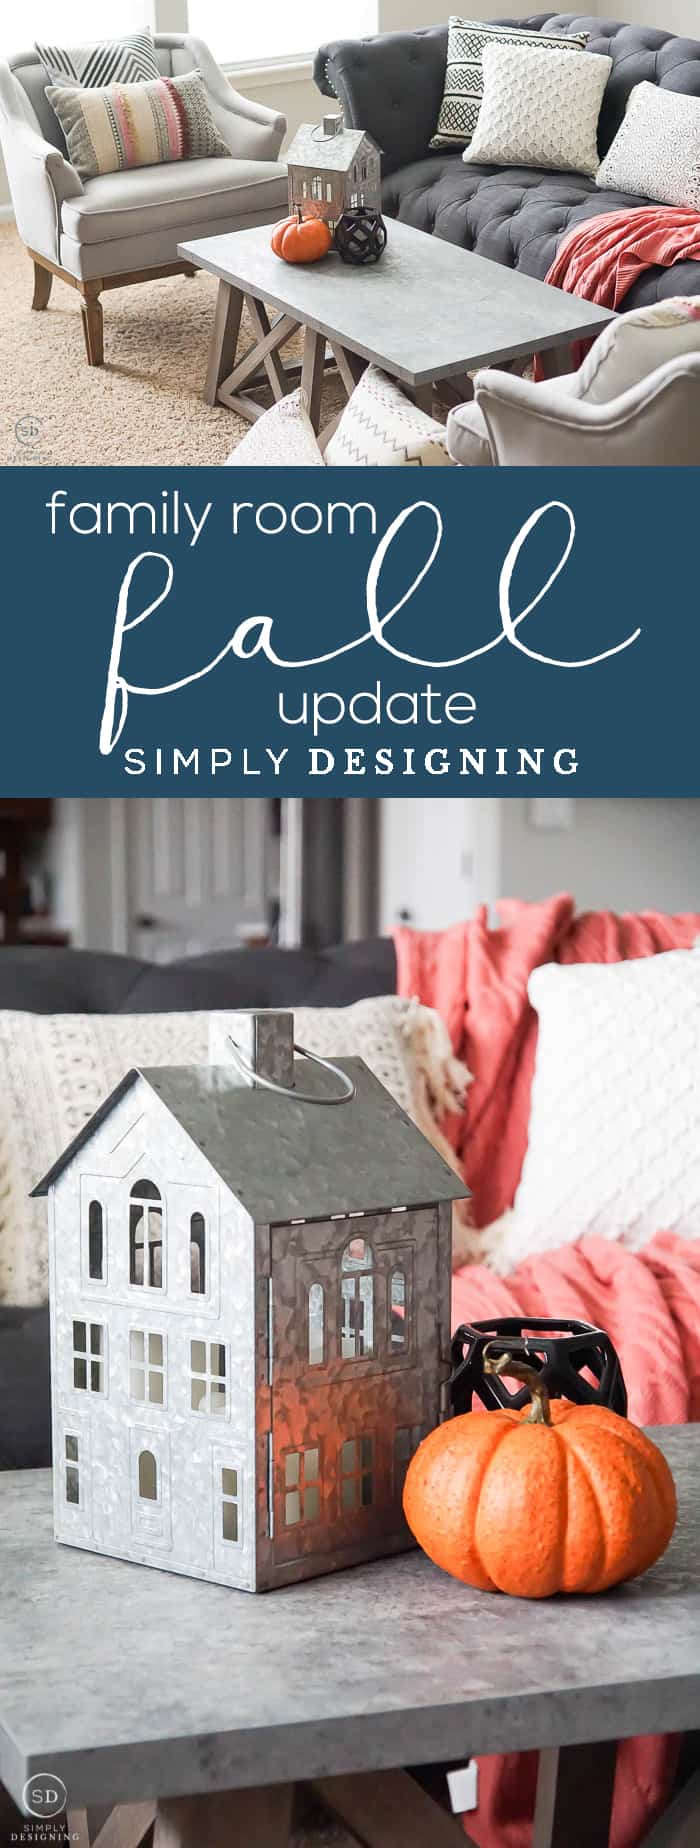 Fall Family Room Update - an affordable family room update that makes this living space warm and cozy and ready for fall